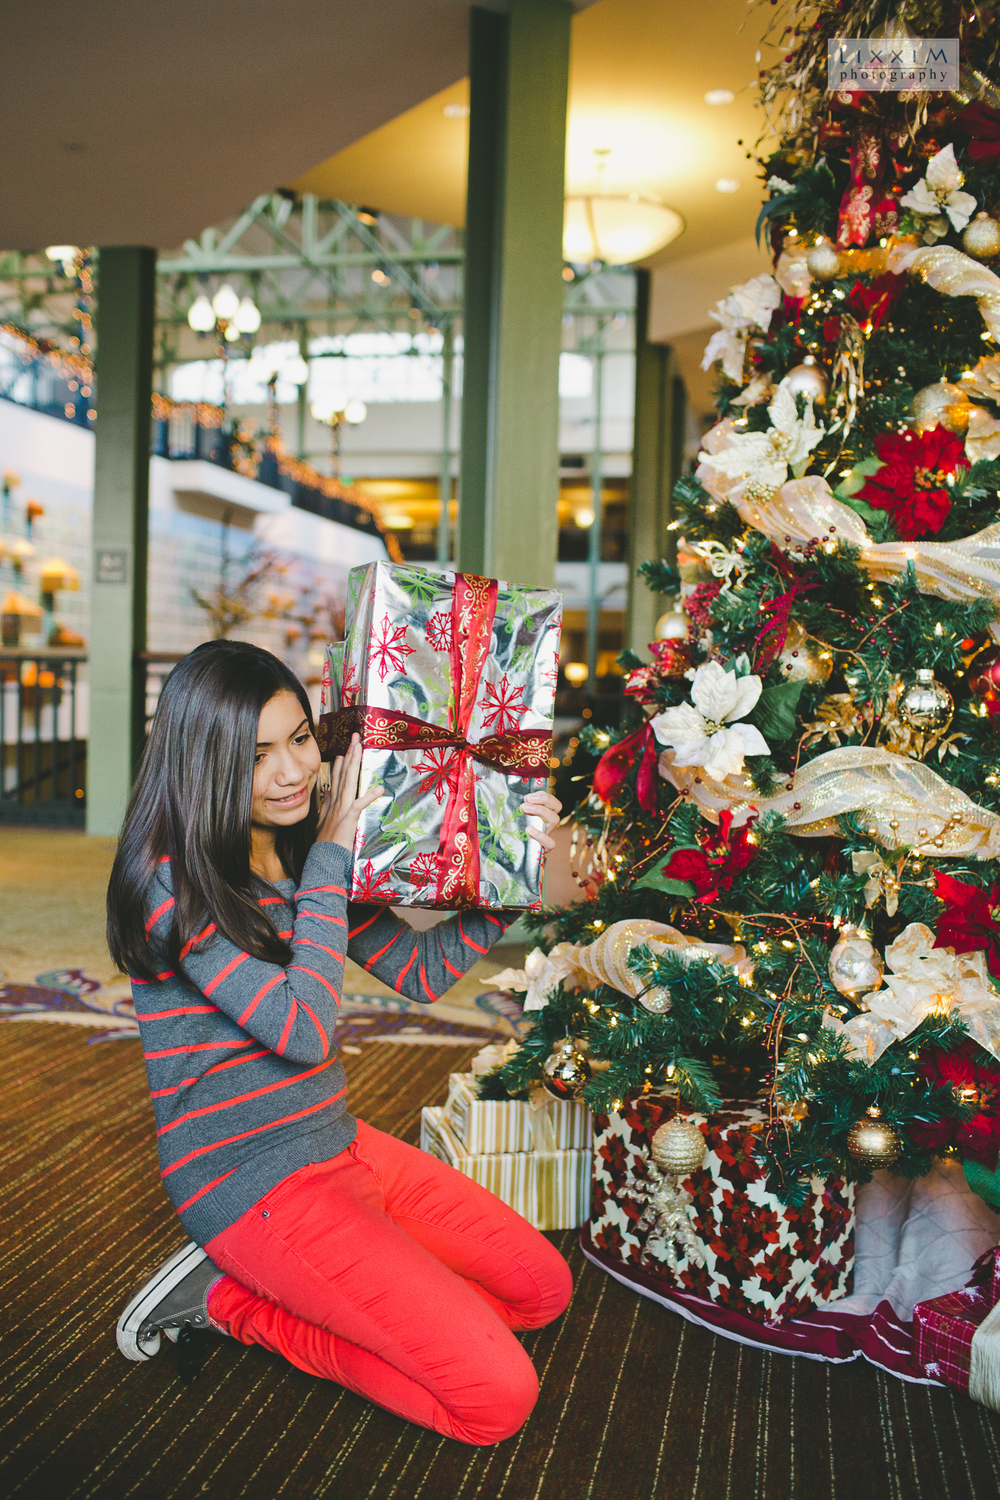 girl-opening-christmas-presents-tree-happy-morning-joy.jpg